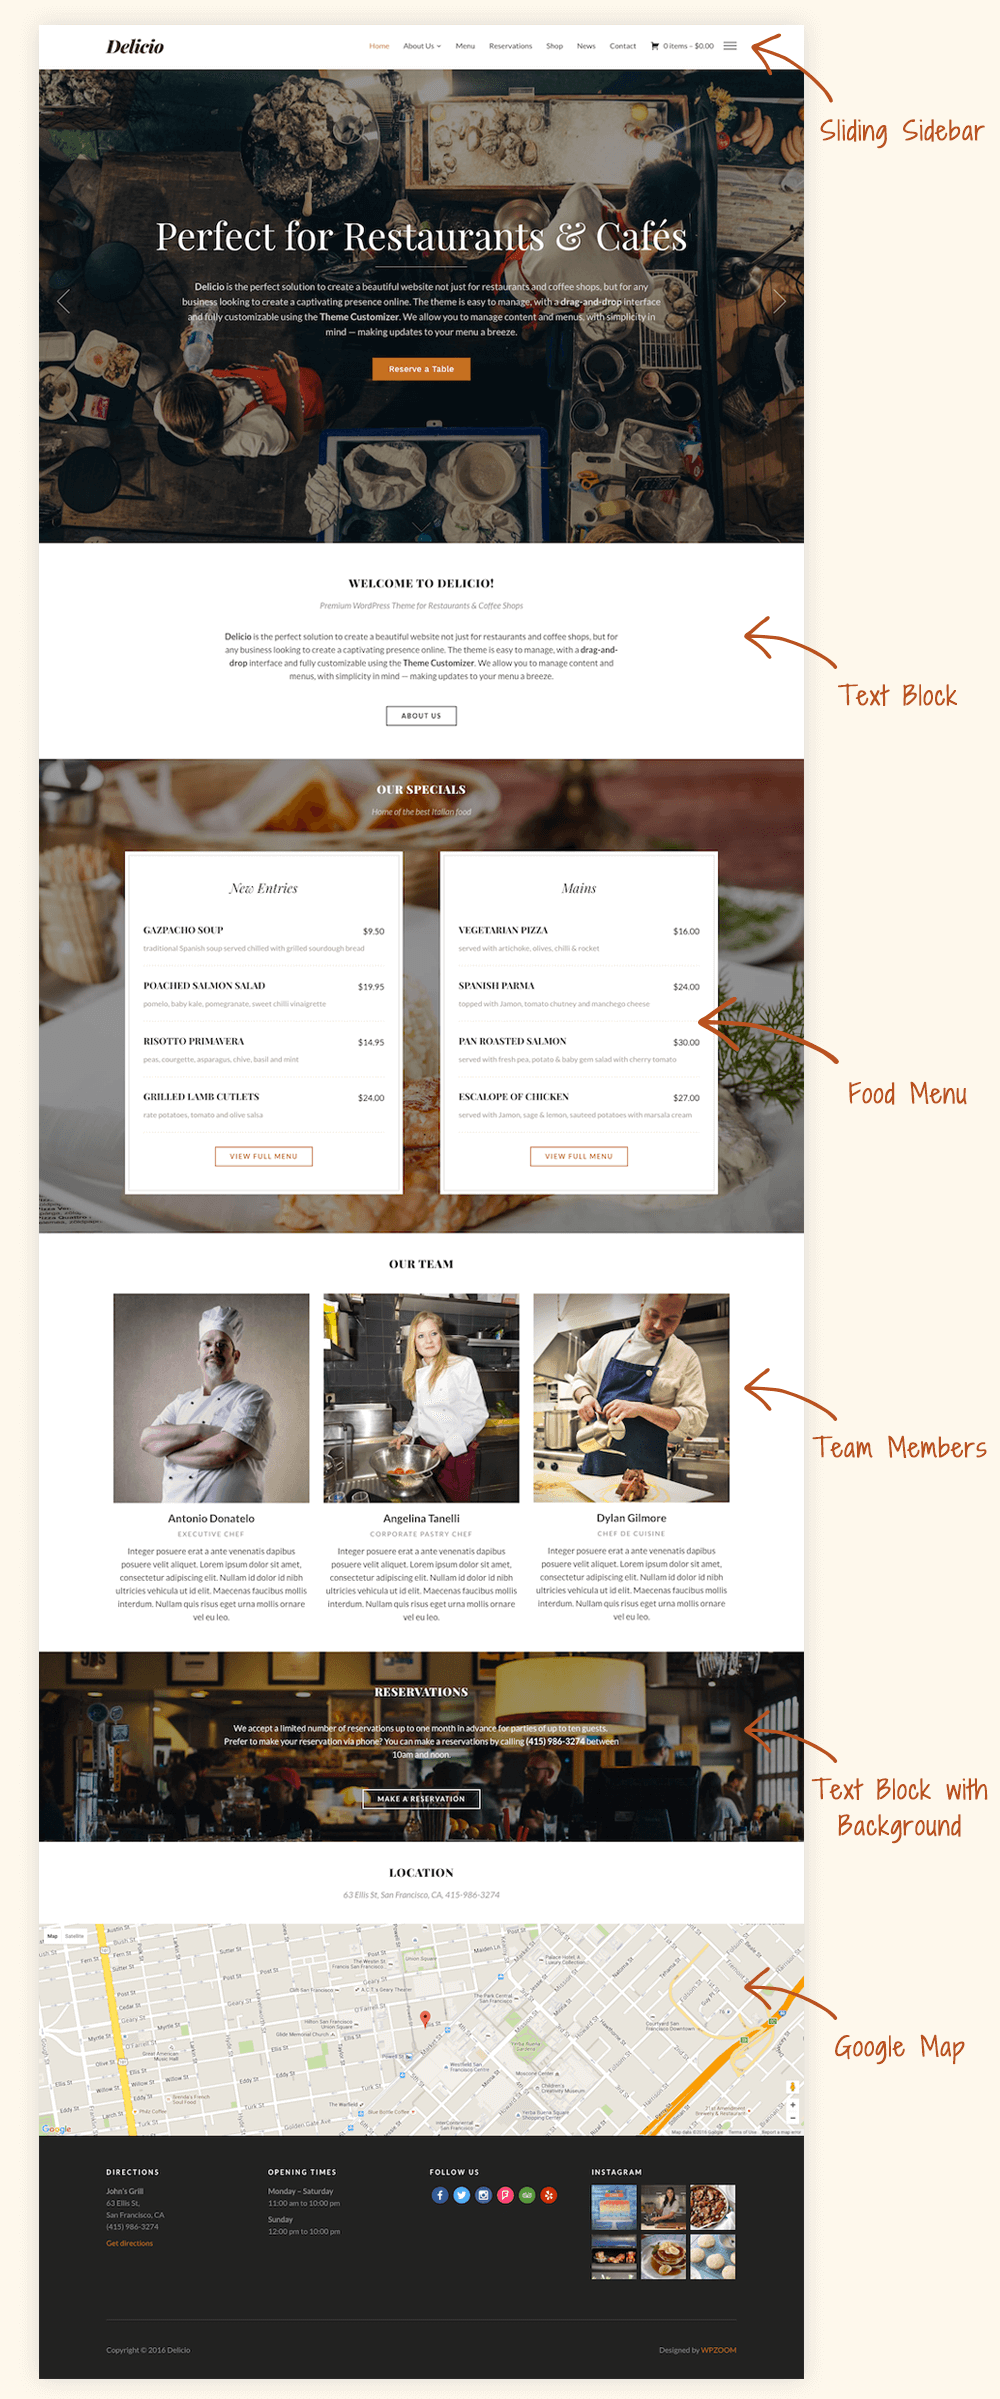 The Delicio restaurant WordPress theme